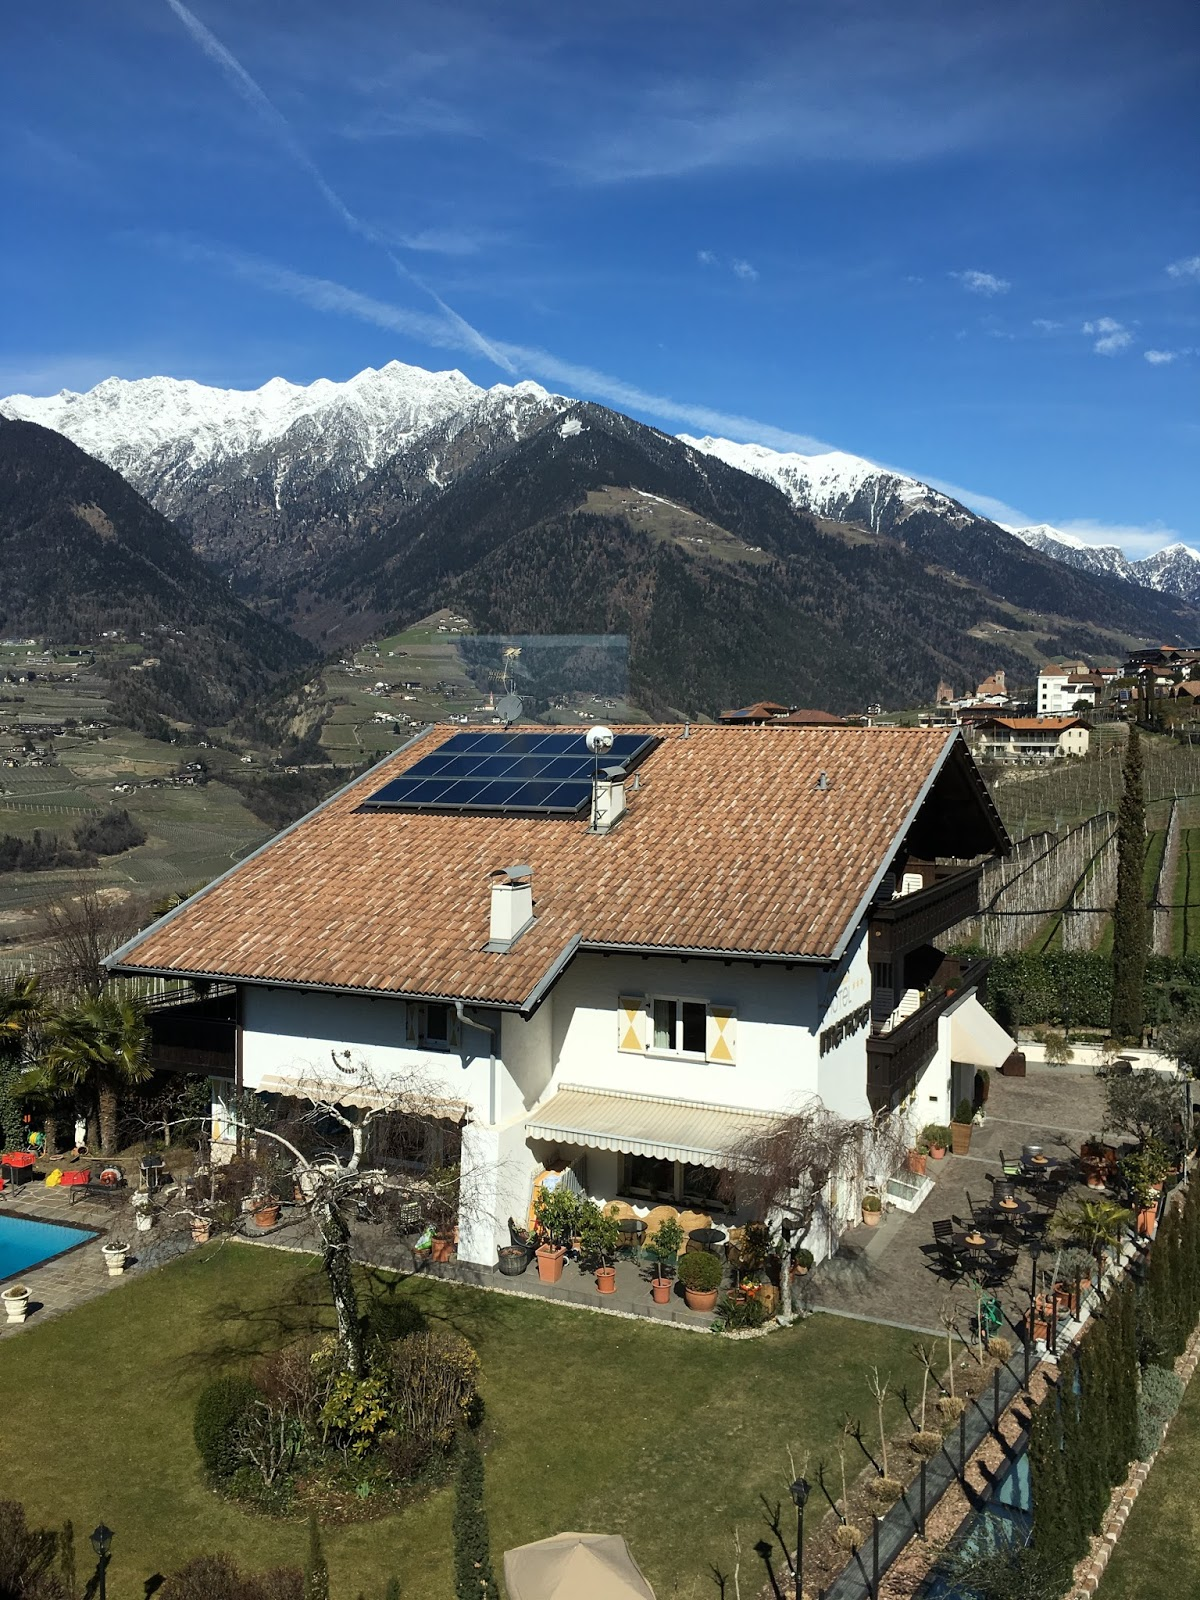 Italy/South Tyrol: Who Else is Drawn to Childhood Holiday Regions ...